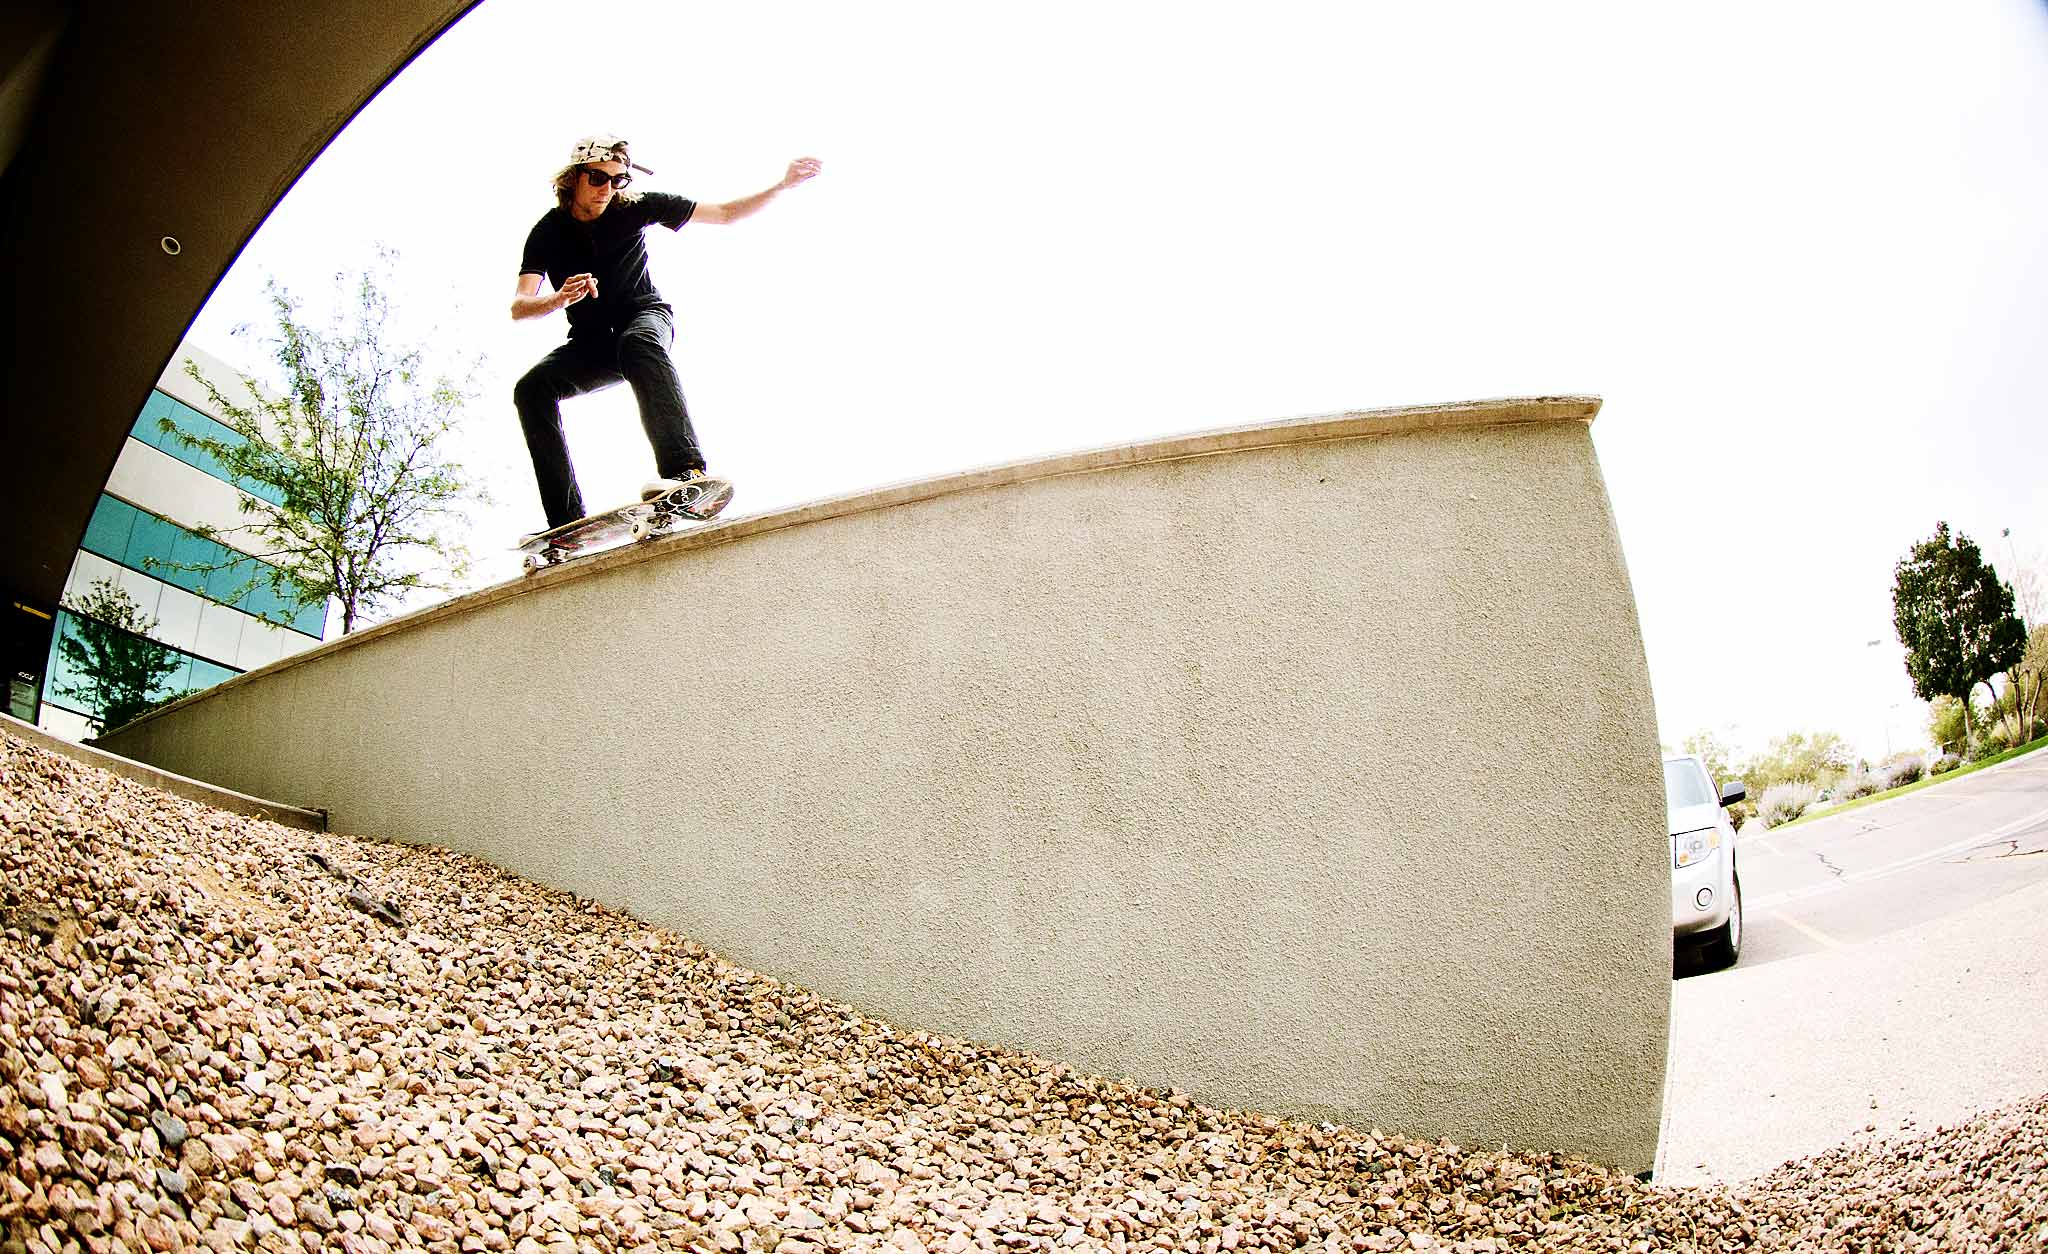 Andrew Lutheran, 50/50 Grind